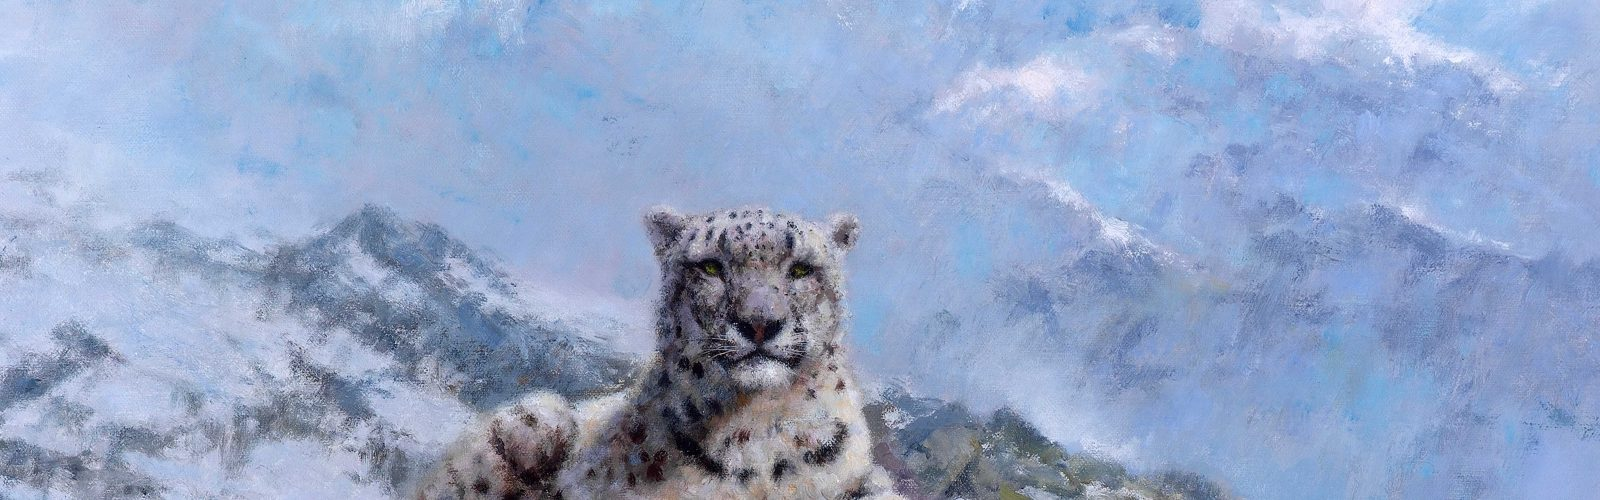 snow leopard painting by david shepherd